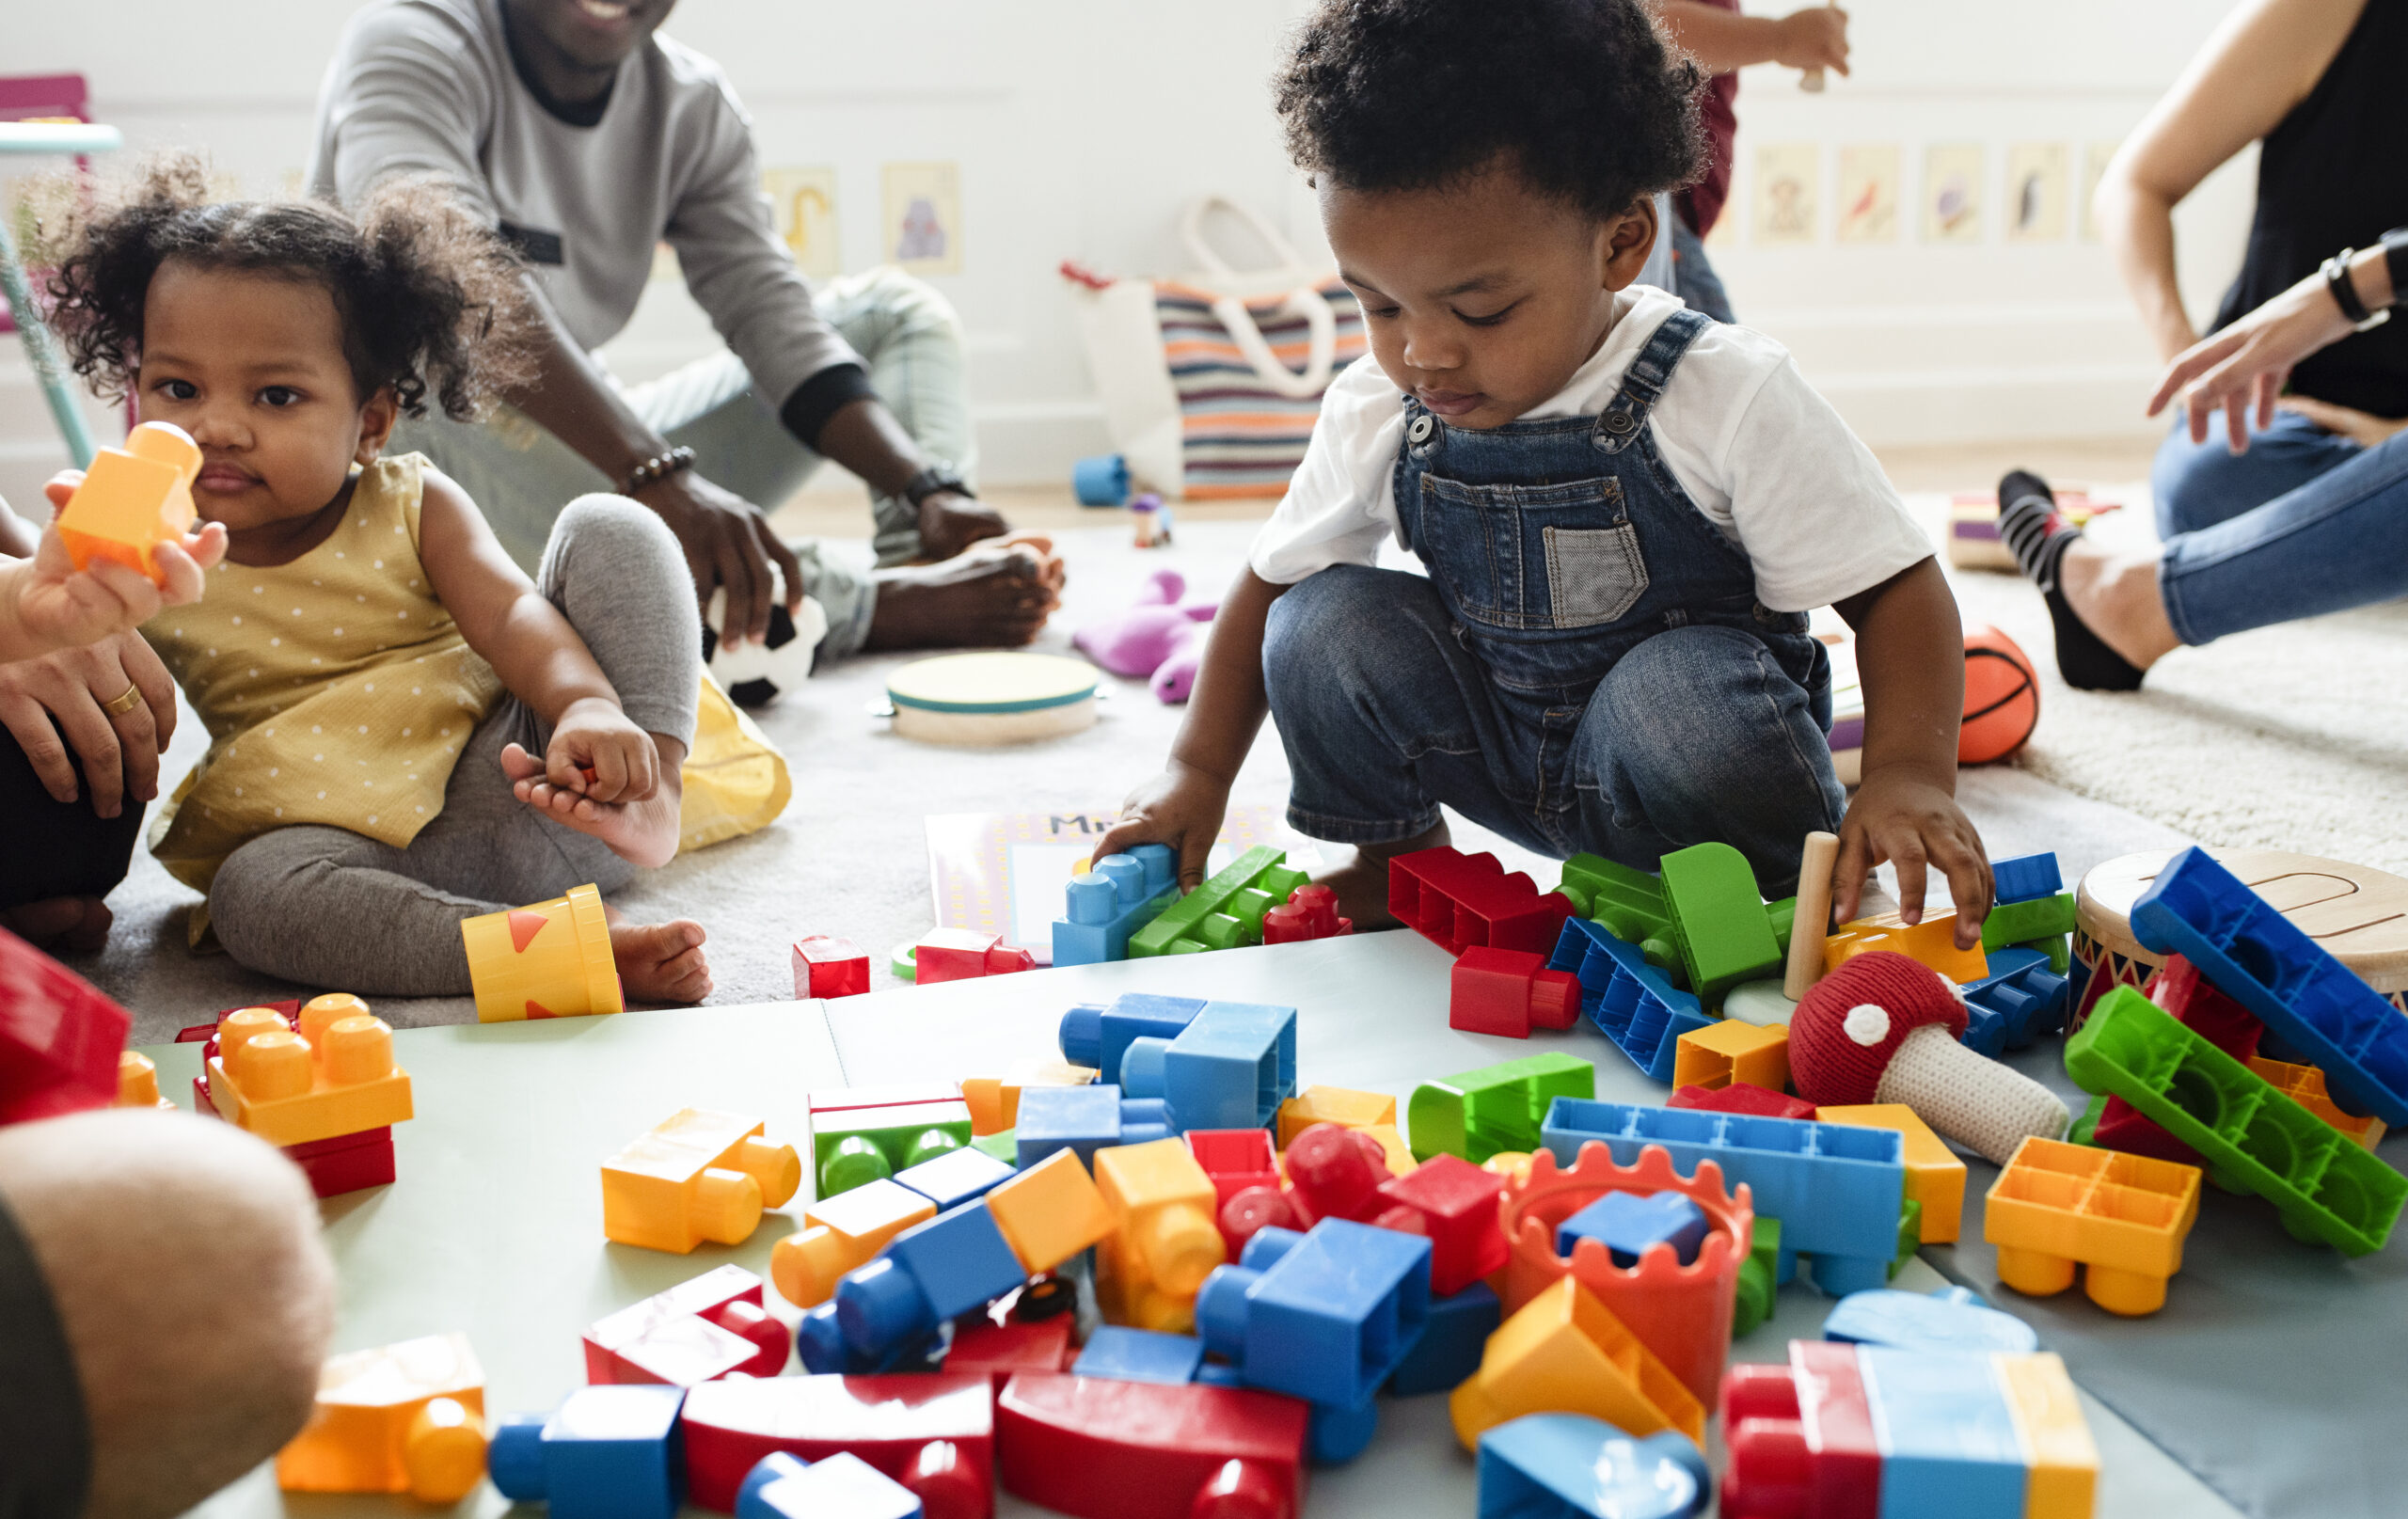 PRESS RELEASE: A Survey of ECE Visibility and Alignment in California School Districts